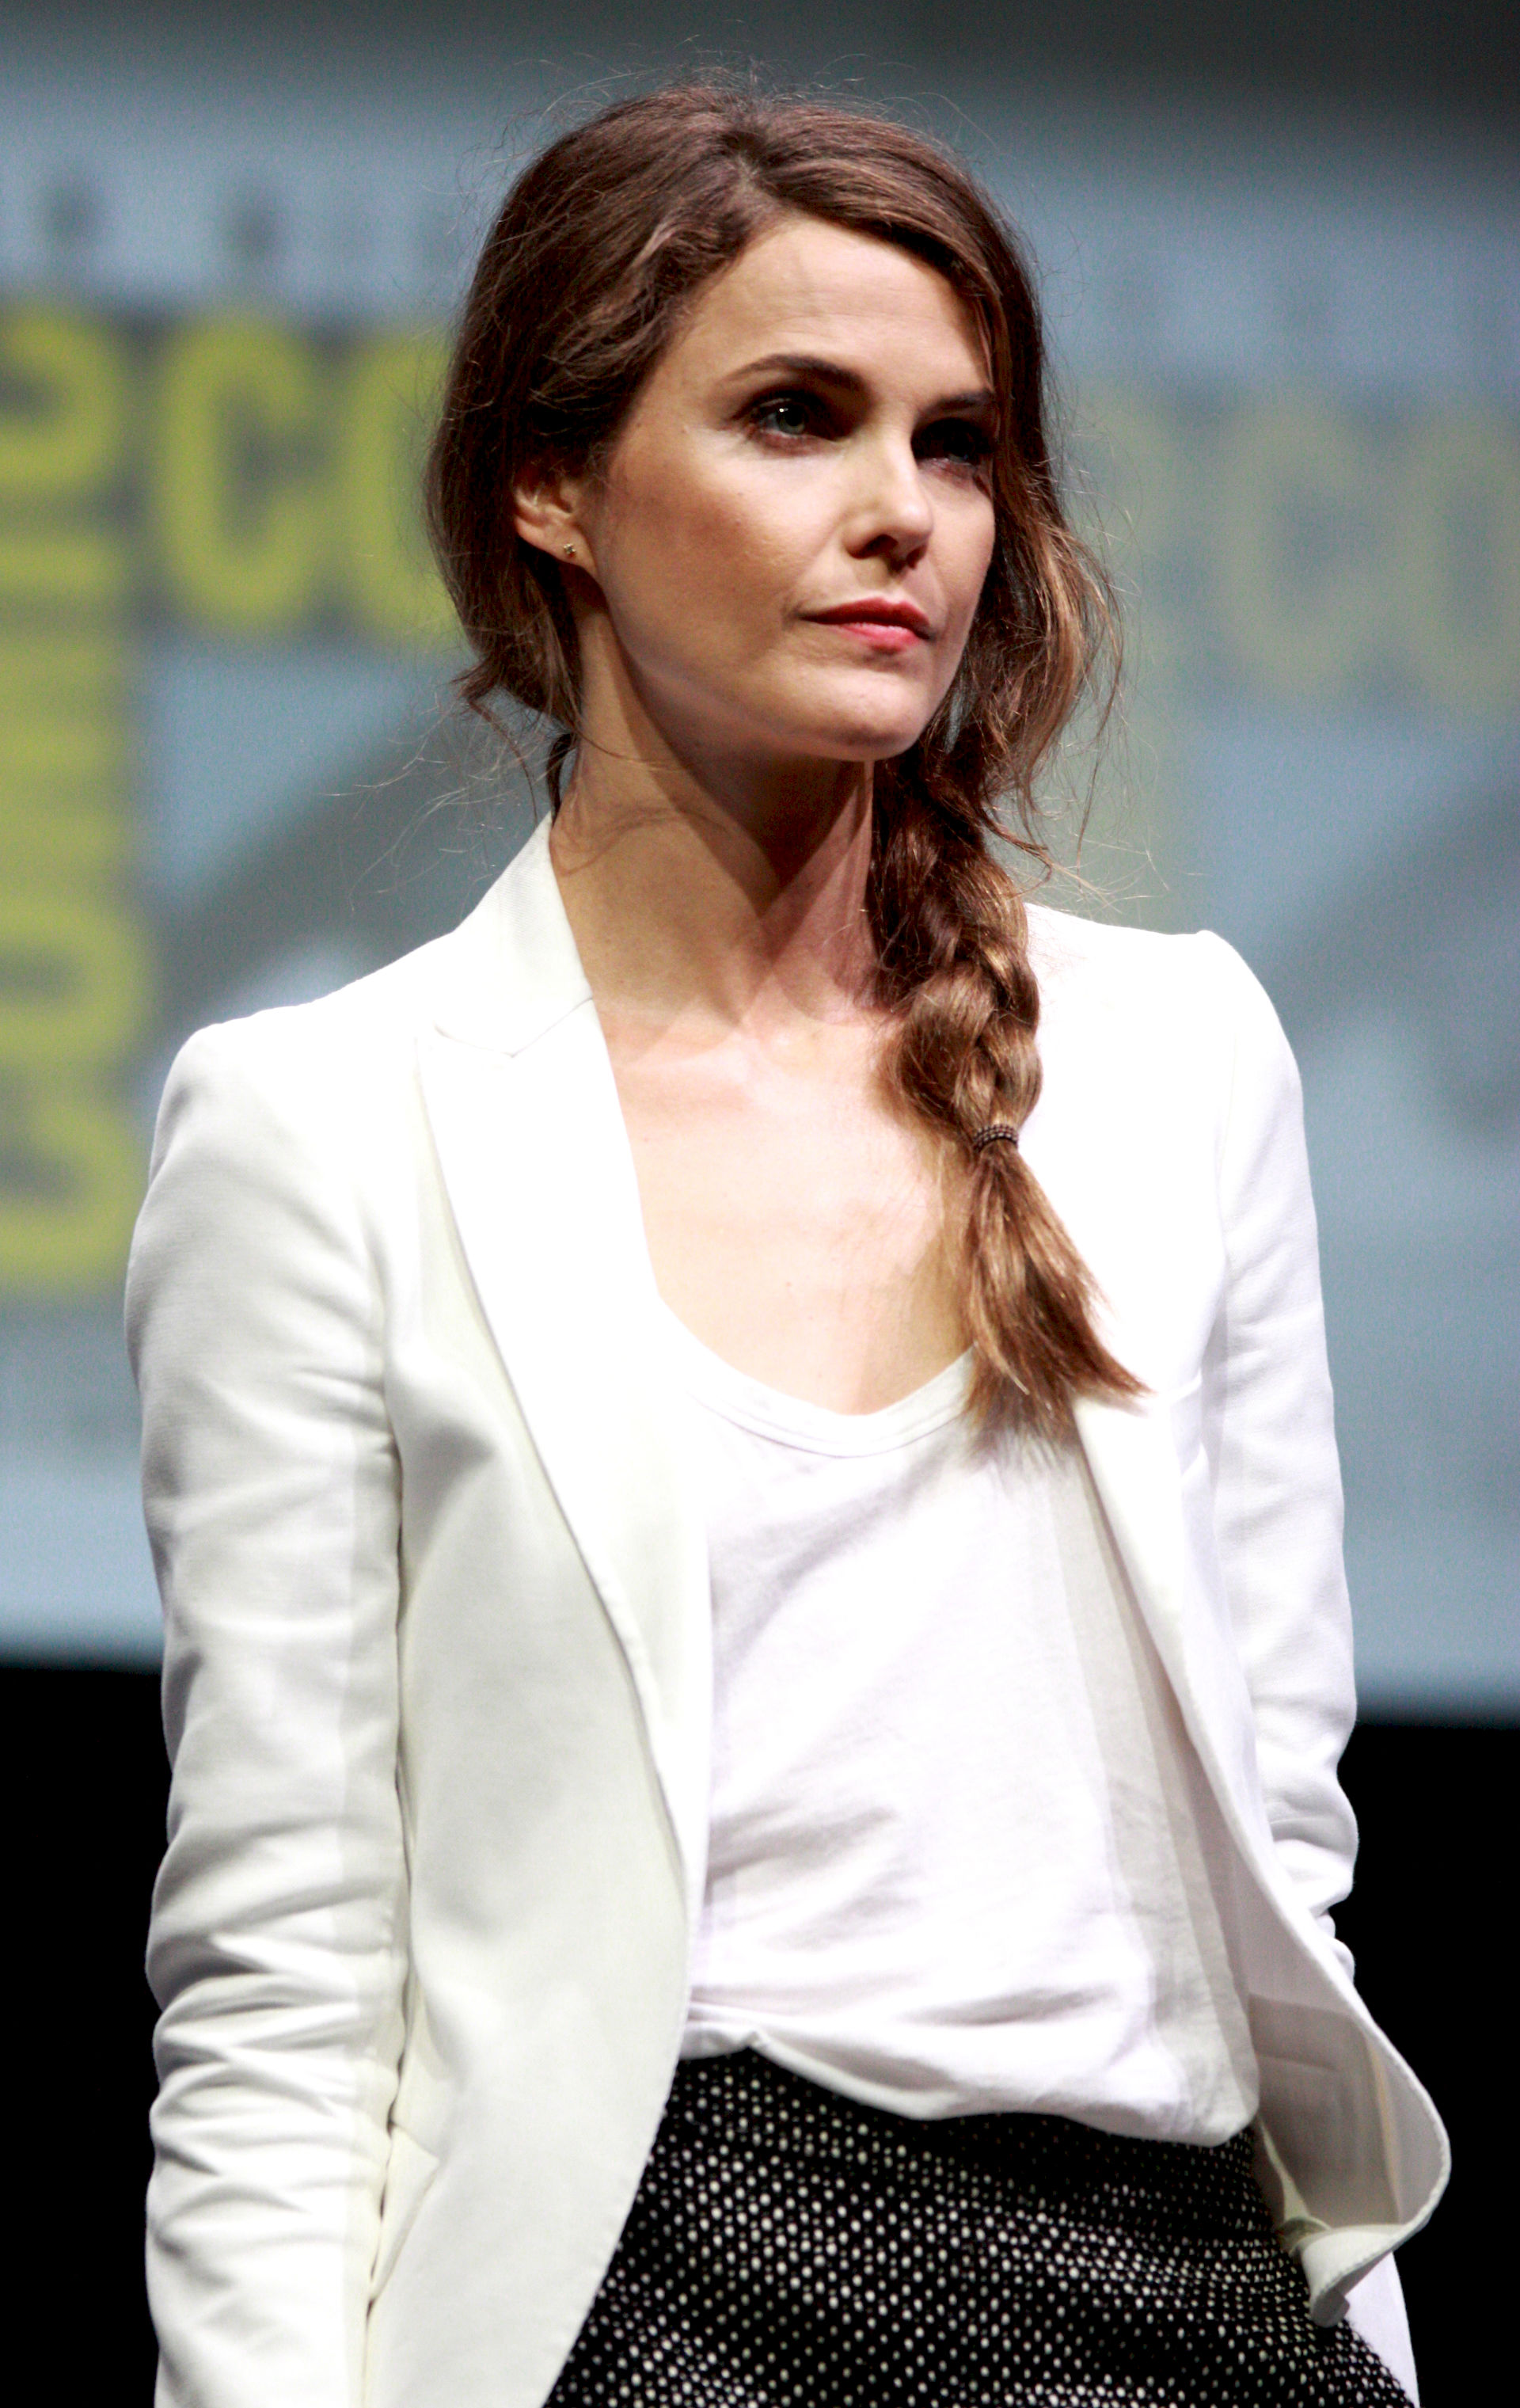 Photo of Keri Russell: American actress and dancer